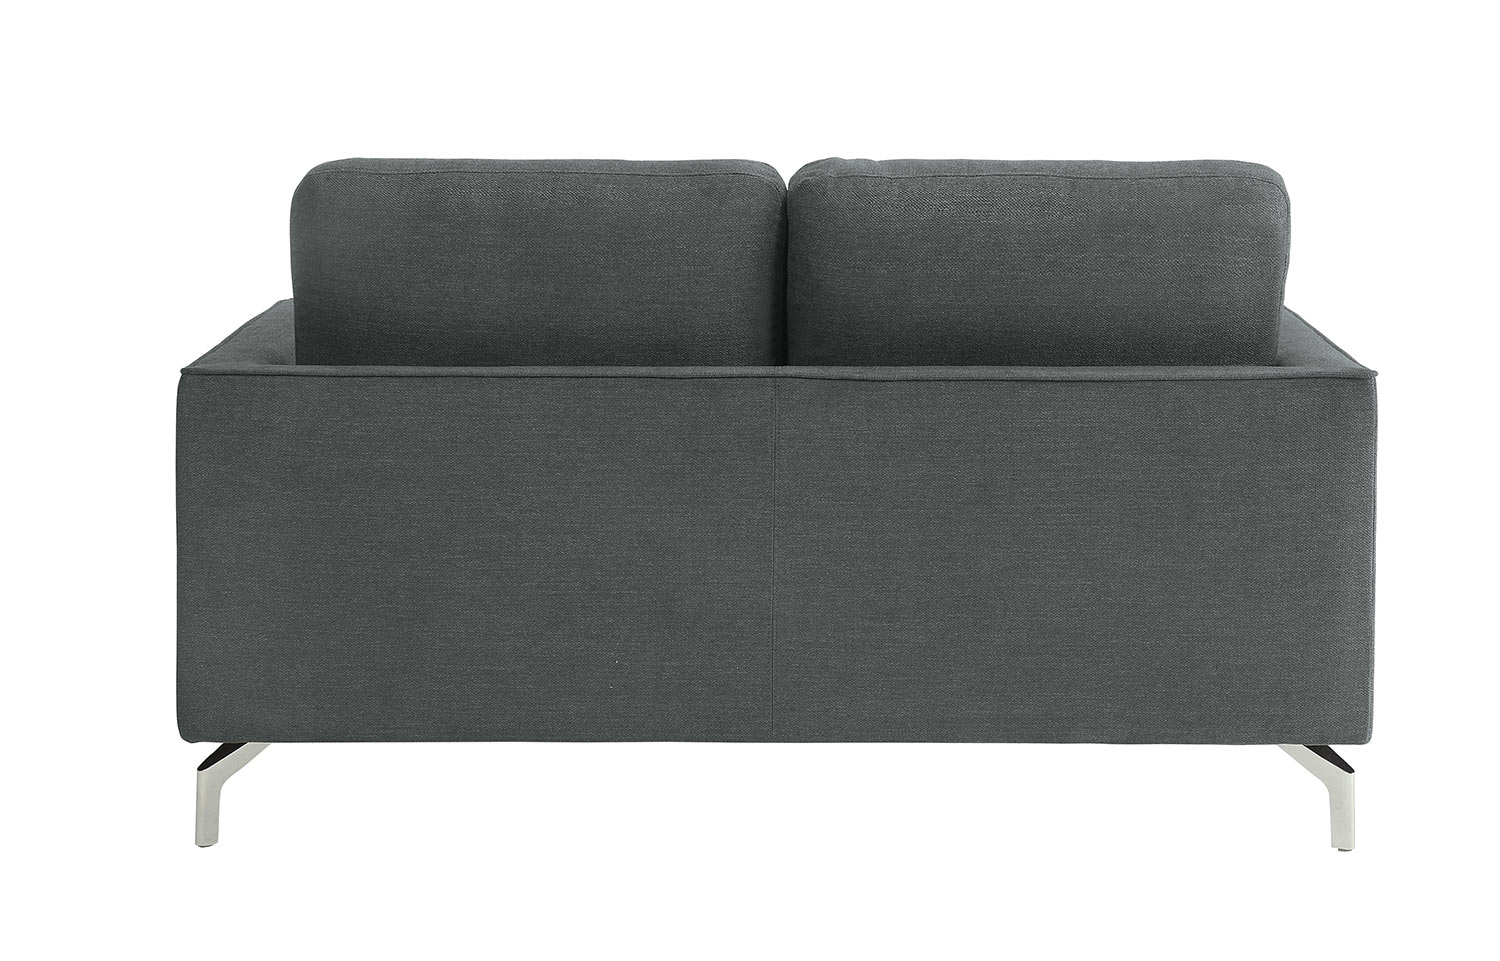 Homelegance Canaan Love Seat - Gray